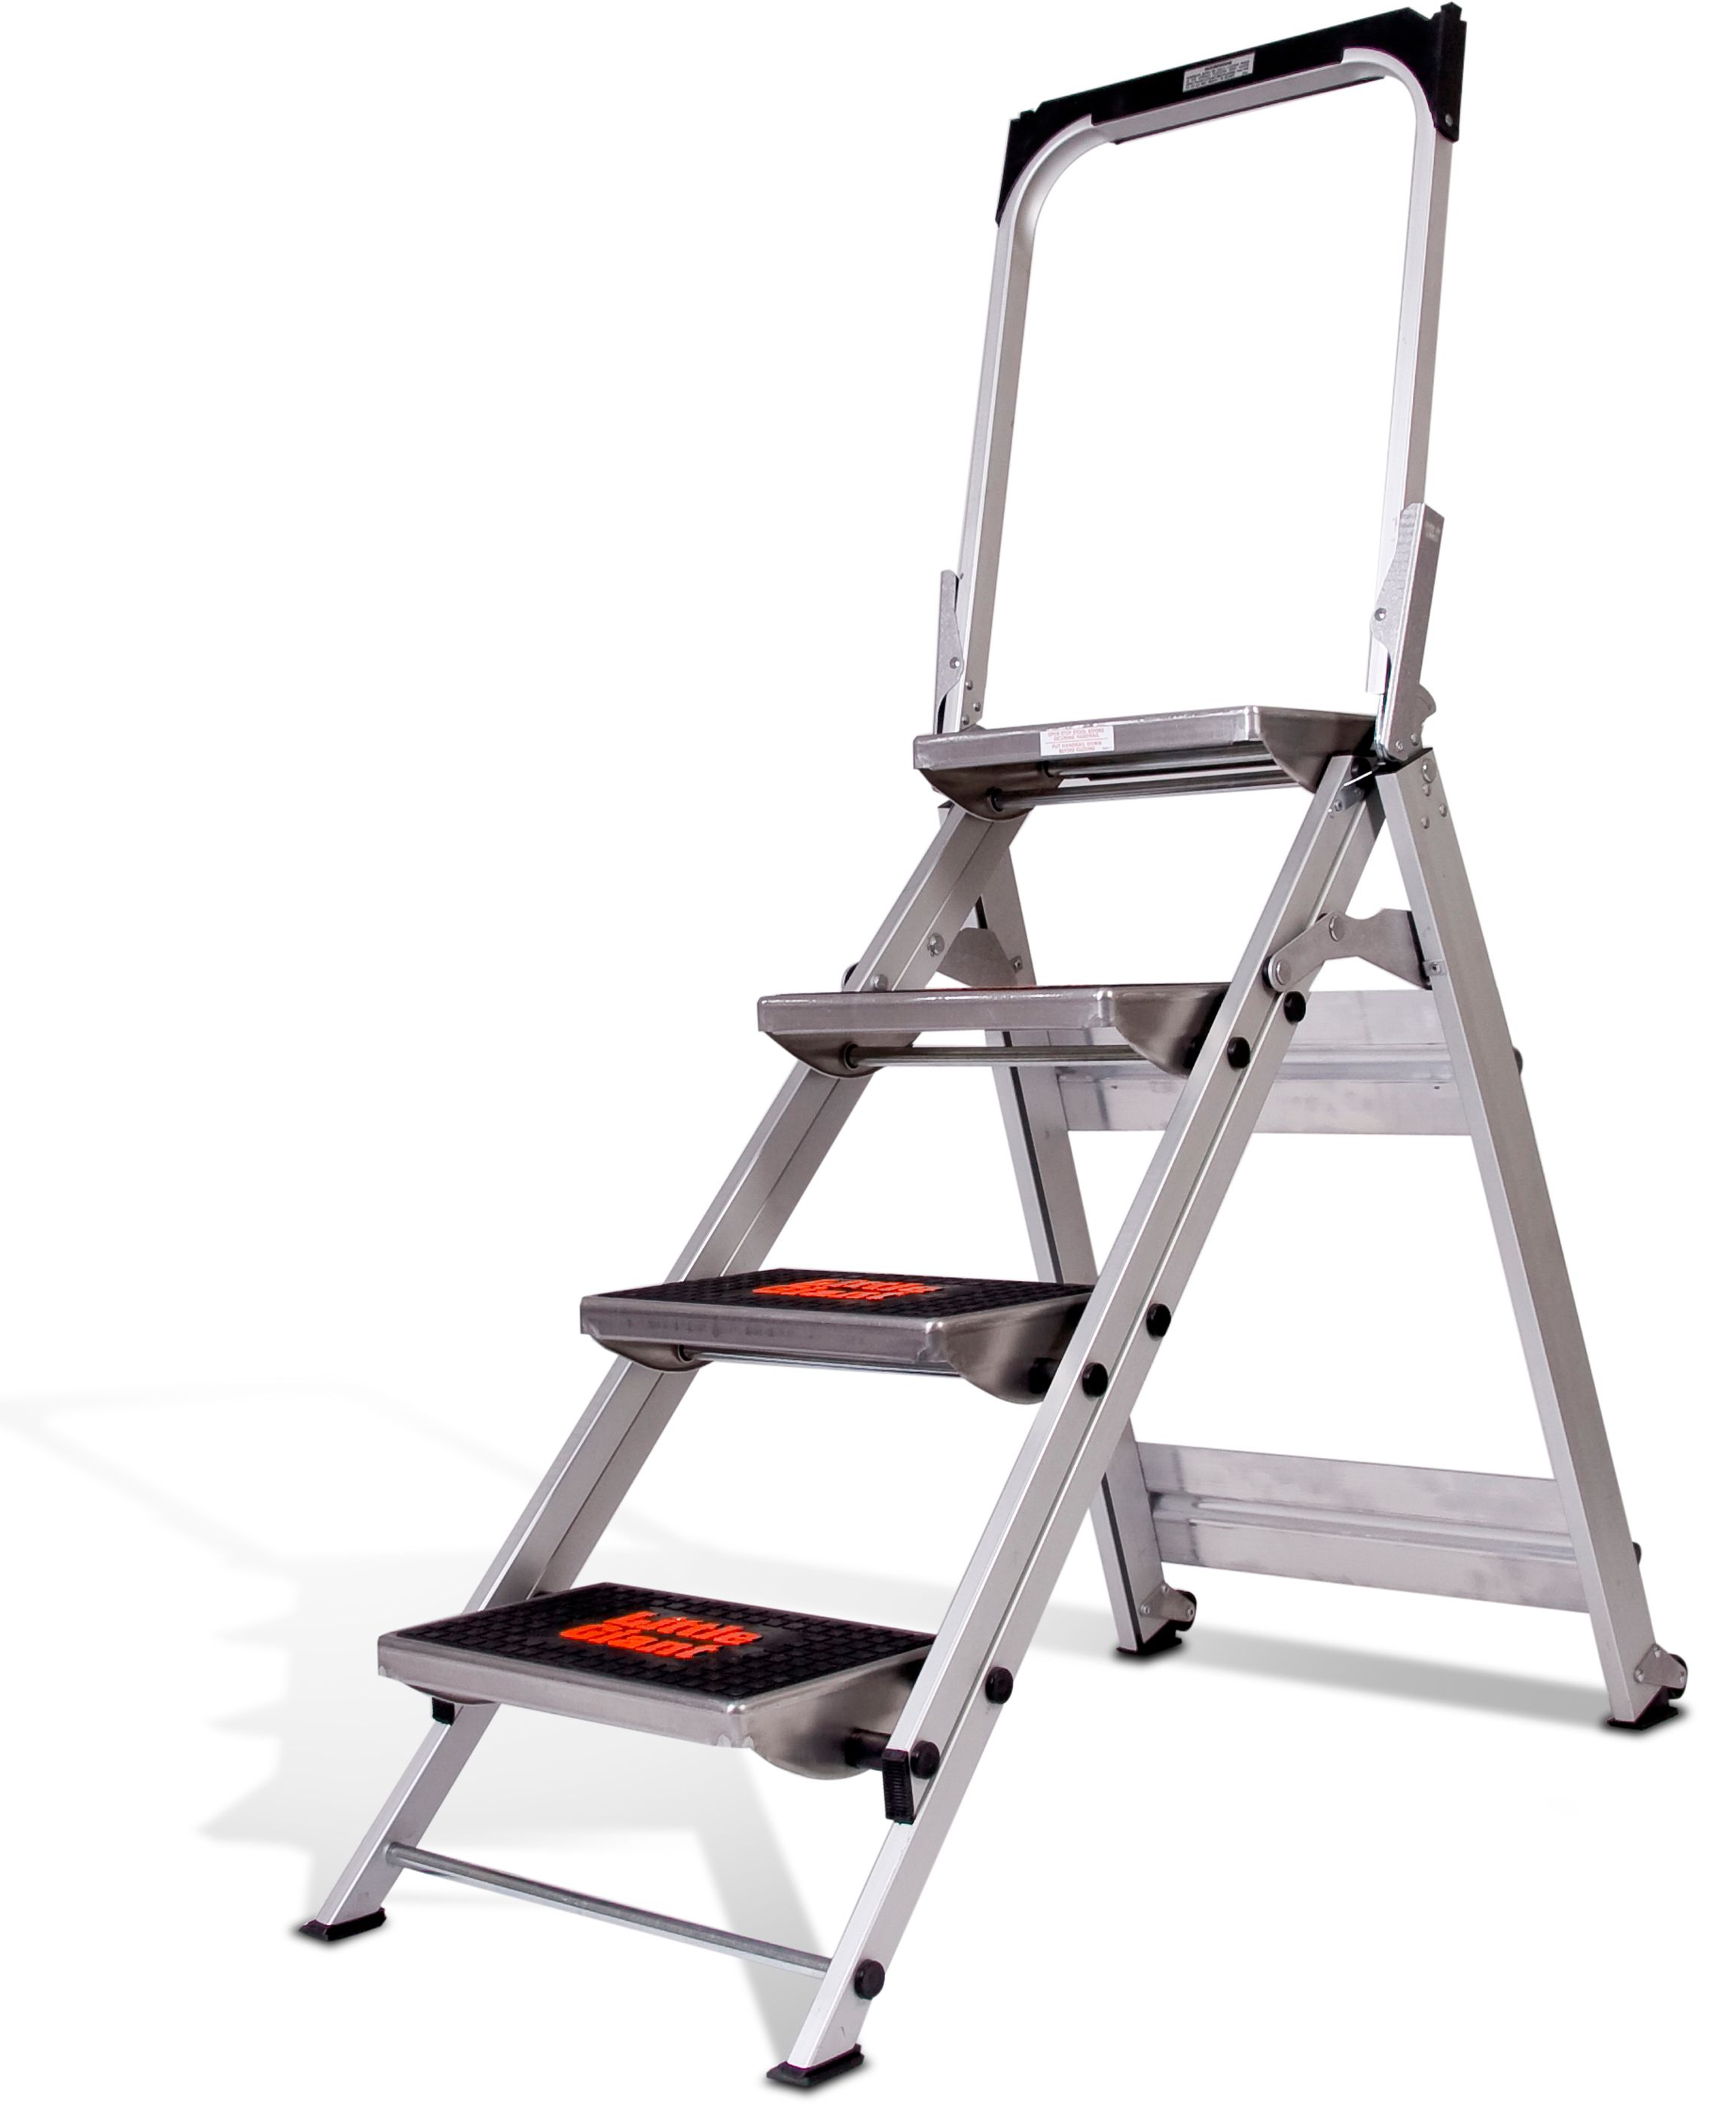 Fabulous Little Giant Ladders 4 Step 300 Lbs Capacity Silver Unemploymentrelief Wooden Chair Designs For Living Room Unemploymentrelieforg